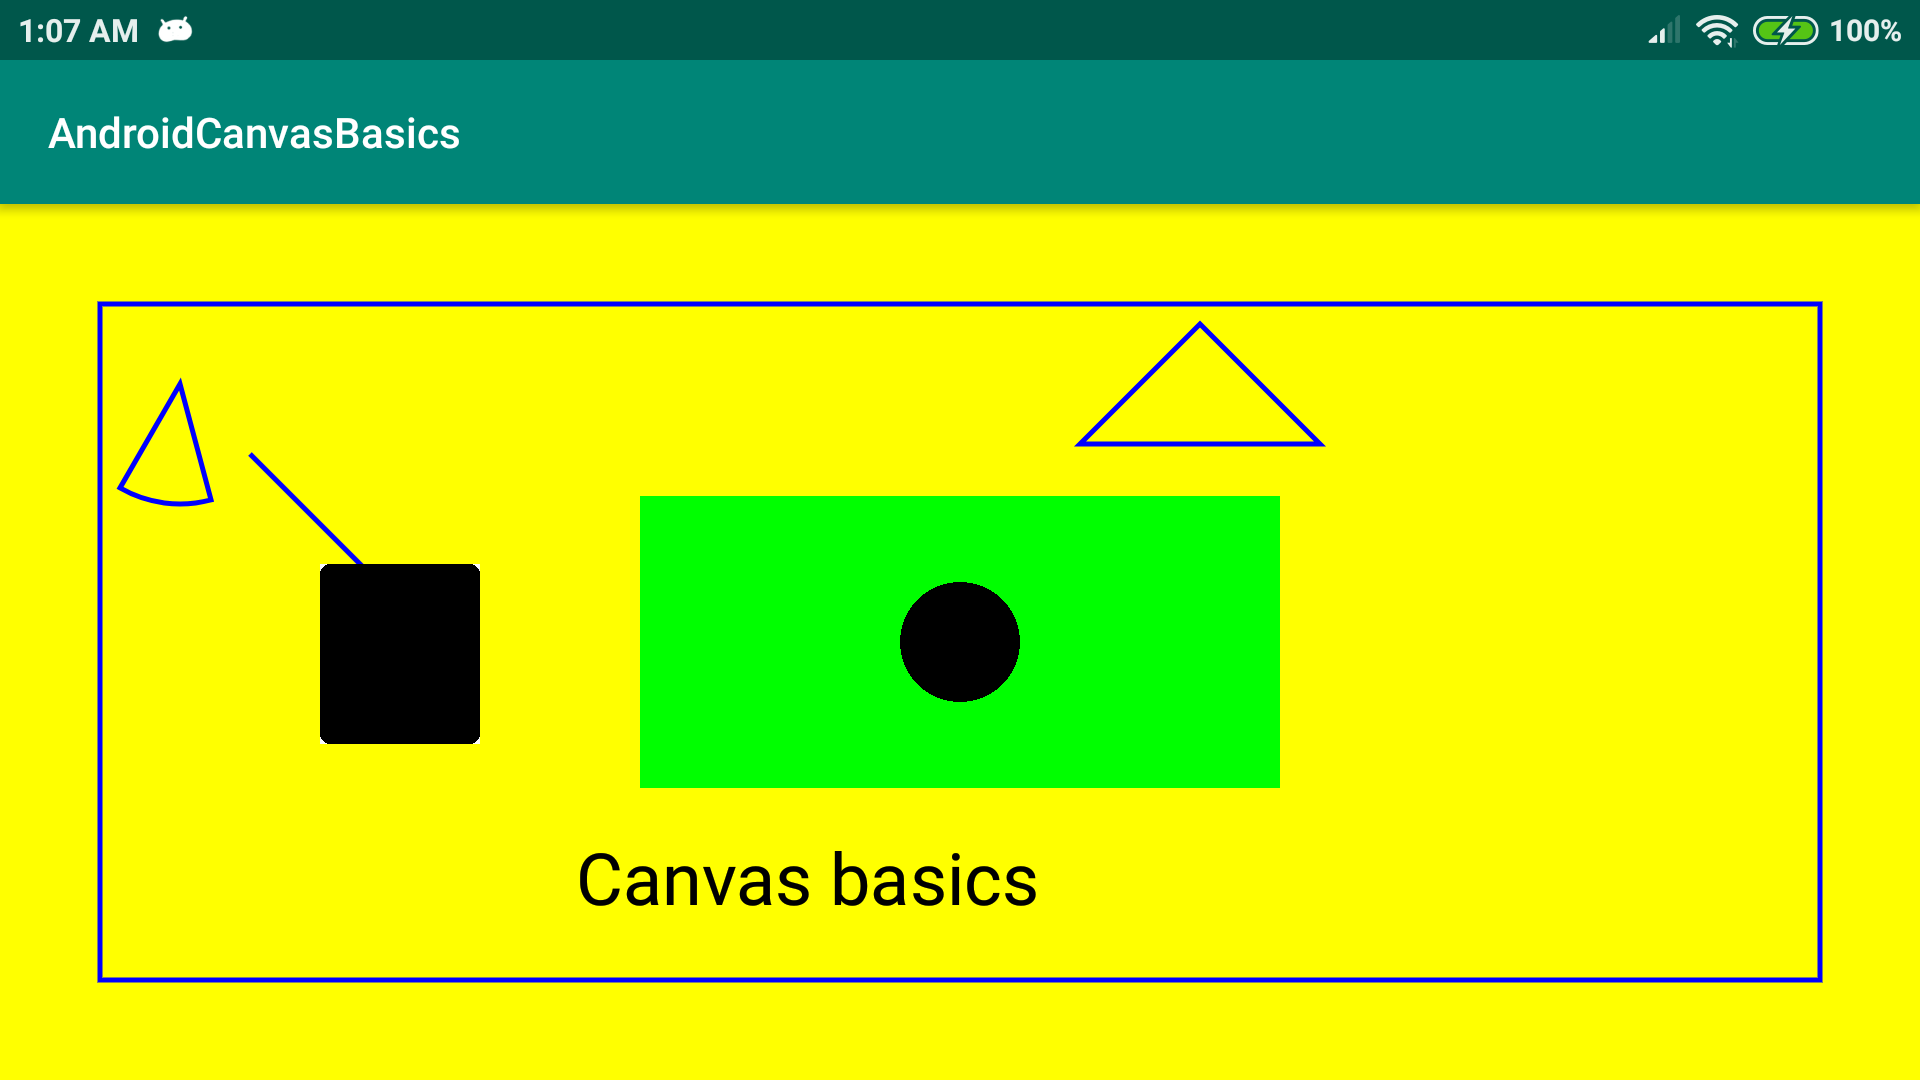 Android Canvas Basics Output 1